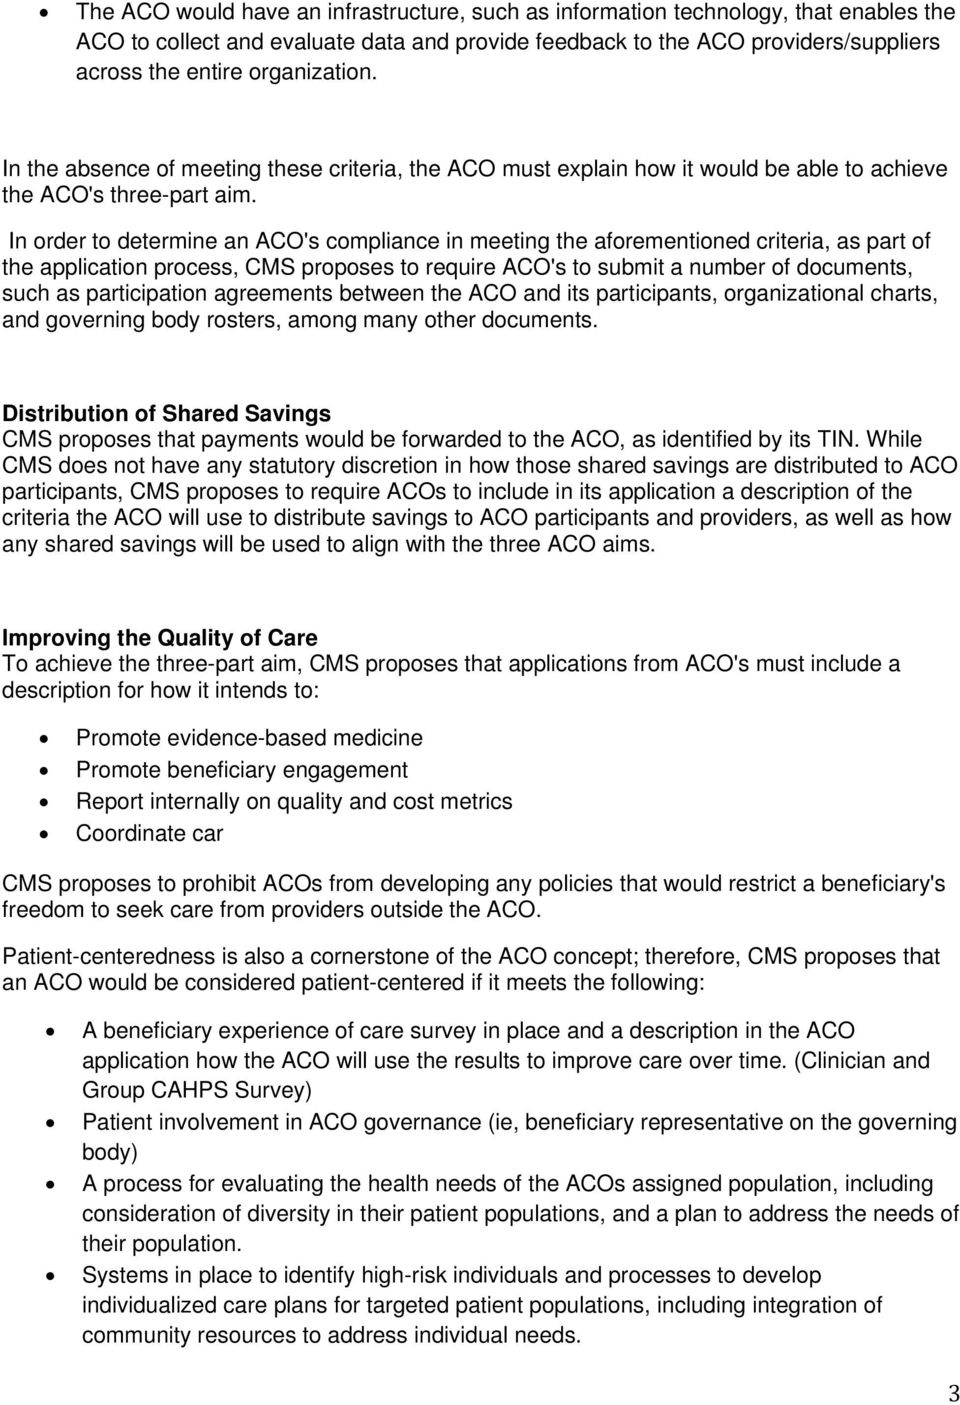 In order to determine an ACO's compliance in meeting the aforementioned criteria, as part of the application process, CMS proposes to require ACO's to submit a number of documents, such as